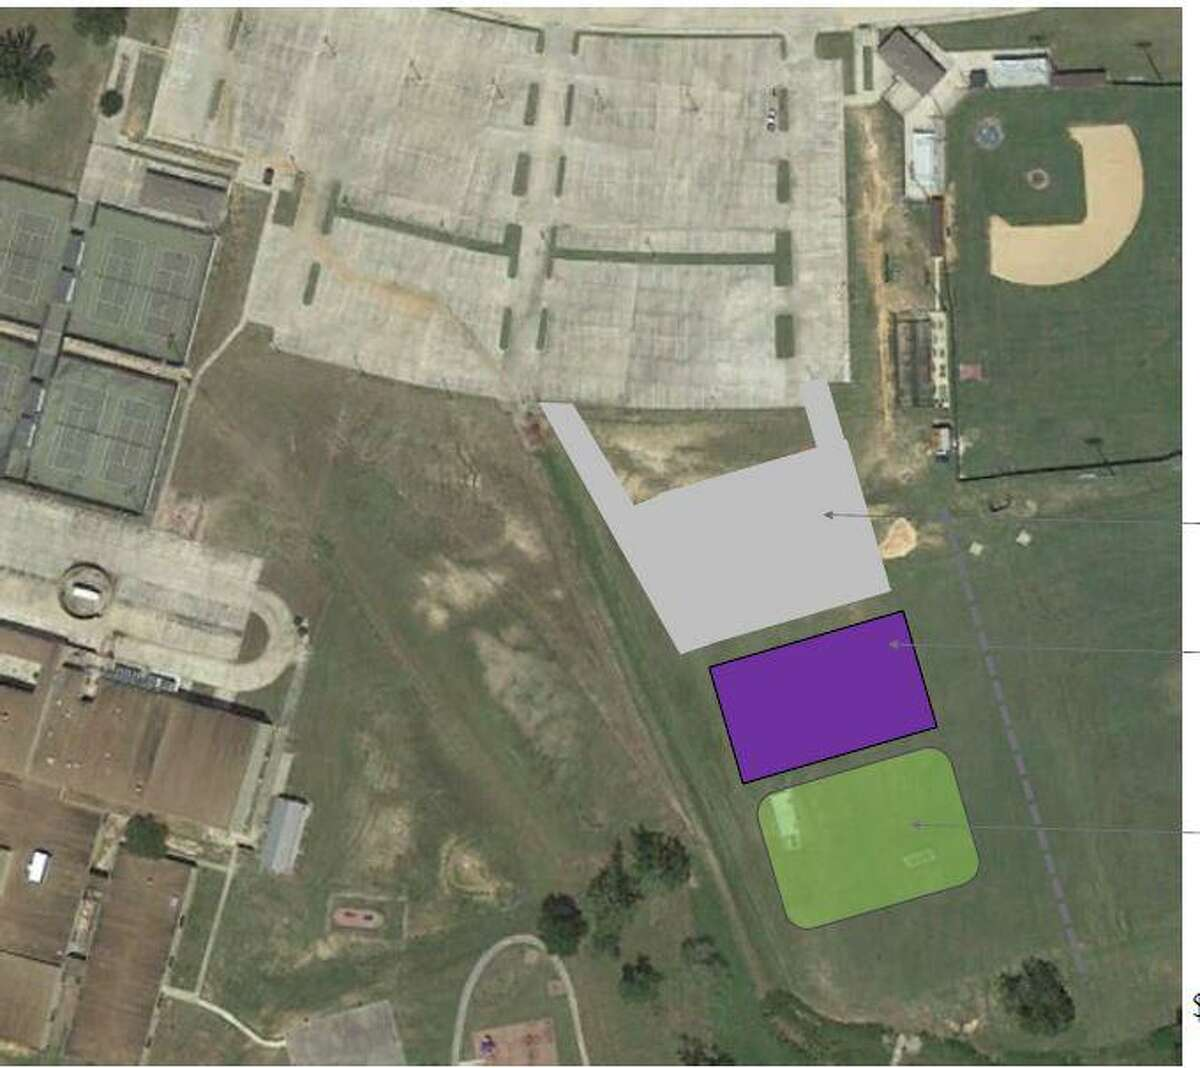 Preliminary designs for projects proposed in the Willis Independent School District's $100 million bond with only one proposition, includes a new pre-k center, a Lynn Lucas addition, and improvements at every campus.